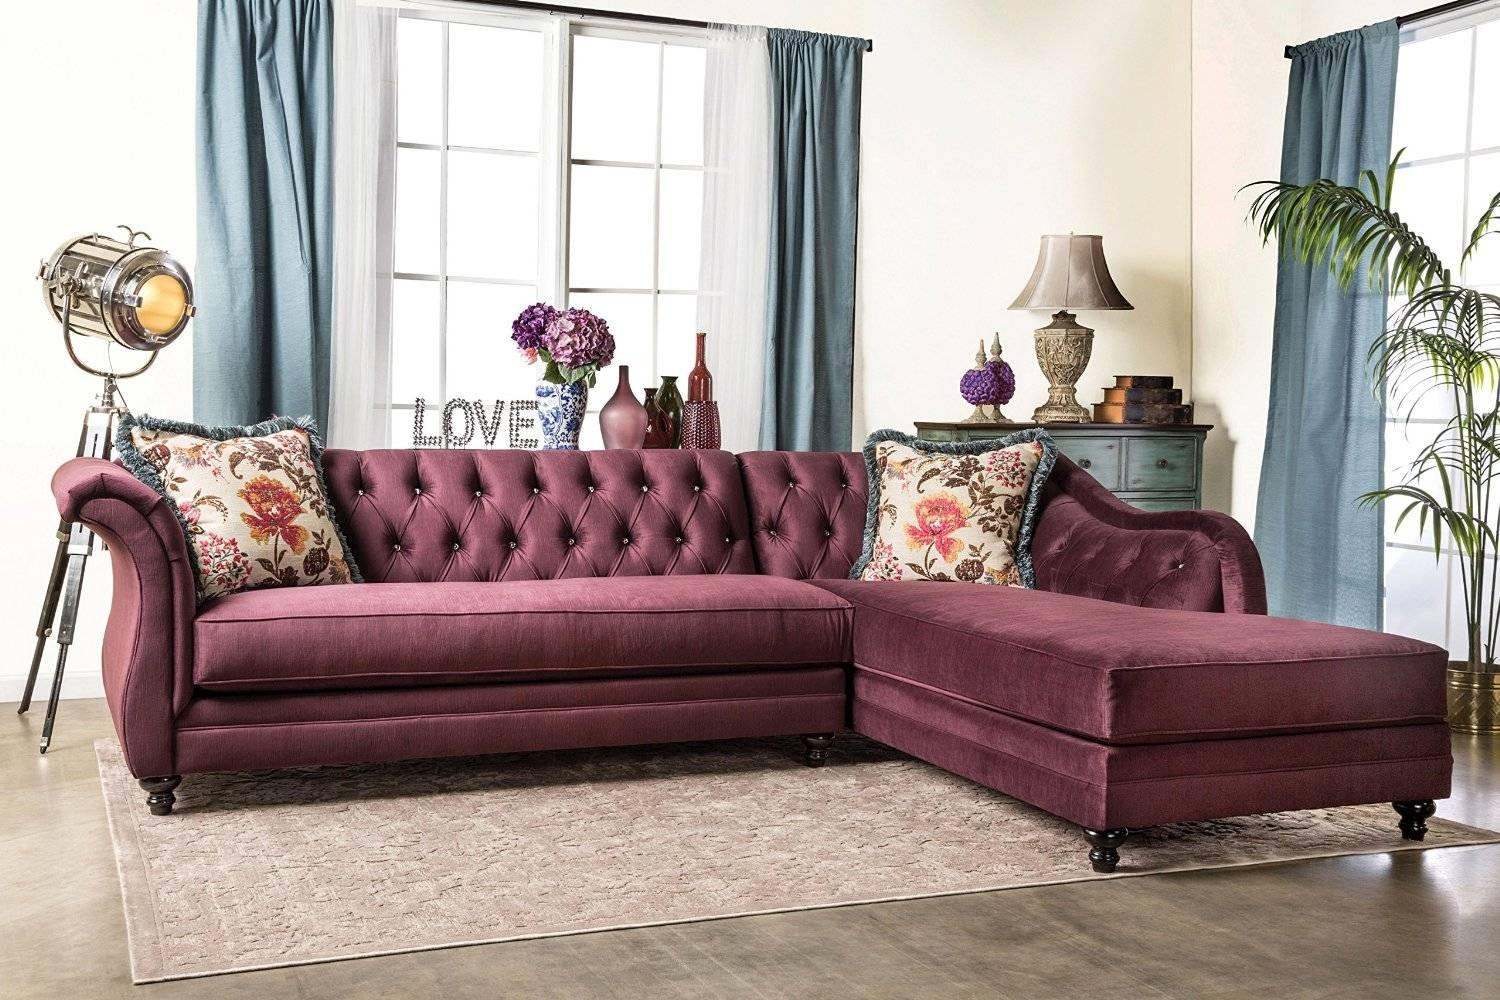 25 Best Chesterfield Sofas To Buy In 2017 inside Chesterfield Furniture (Image 2 of 30)